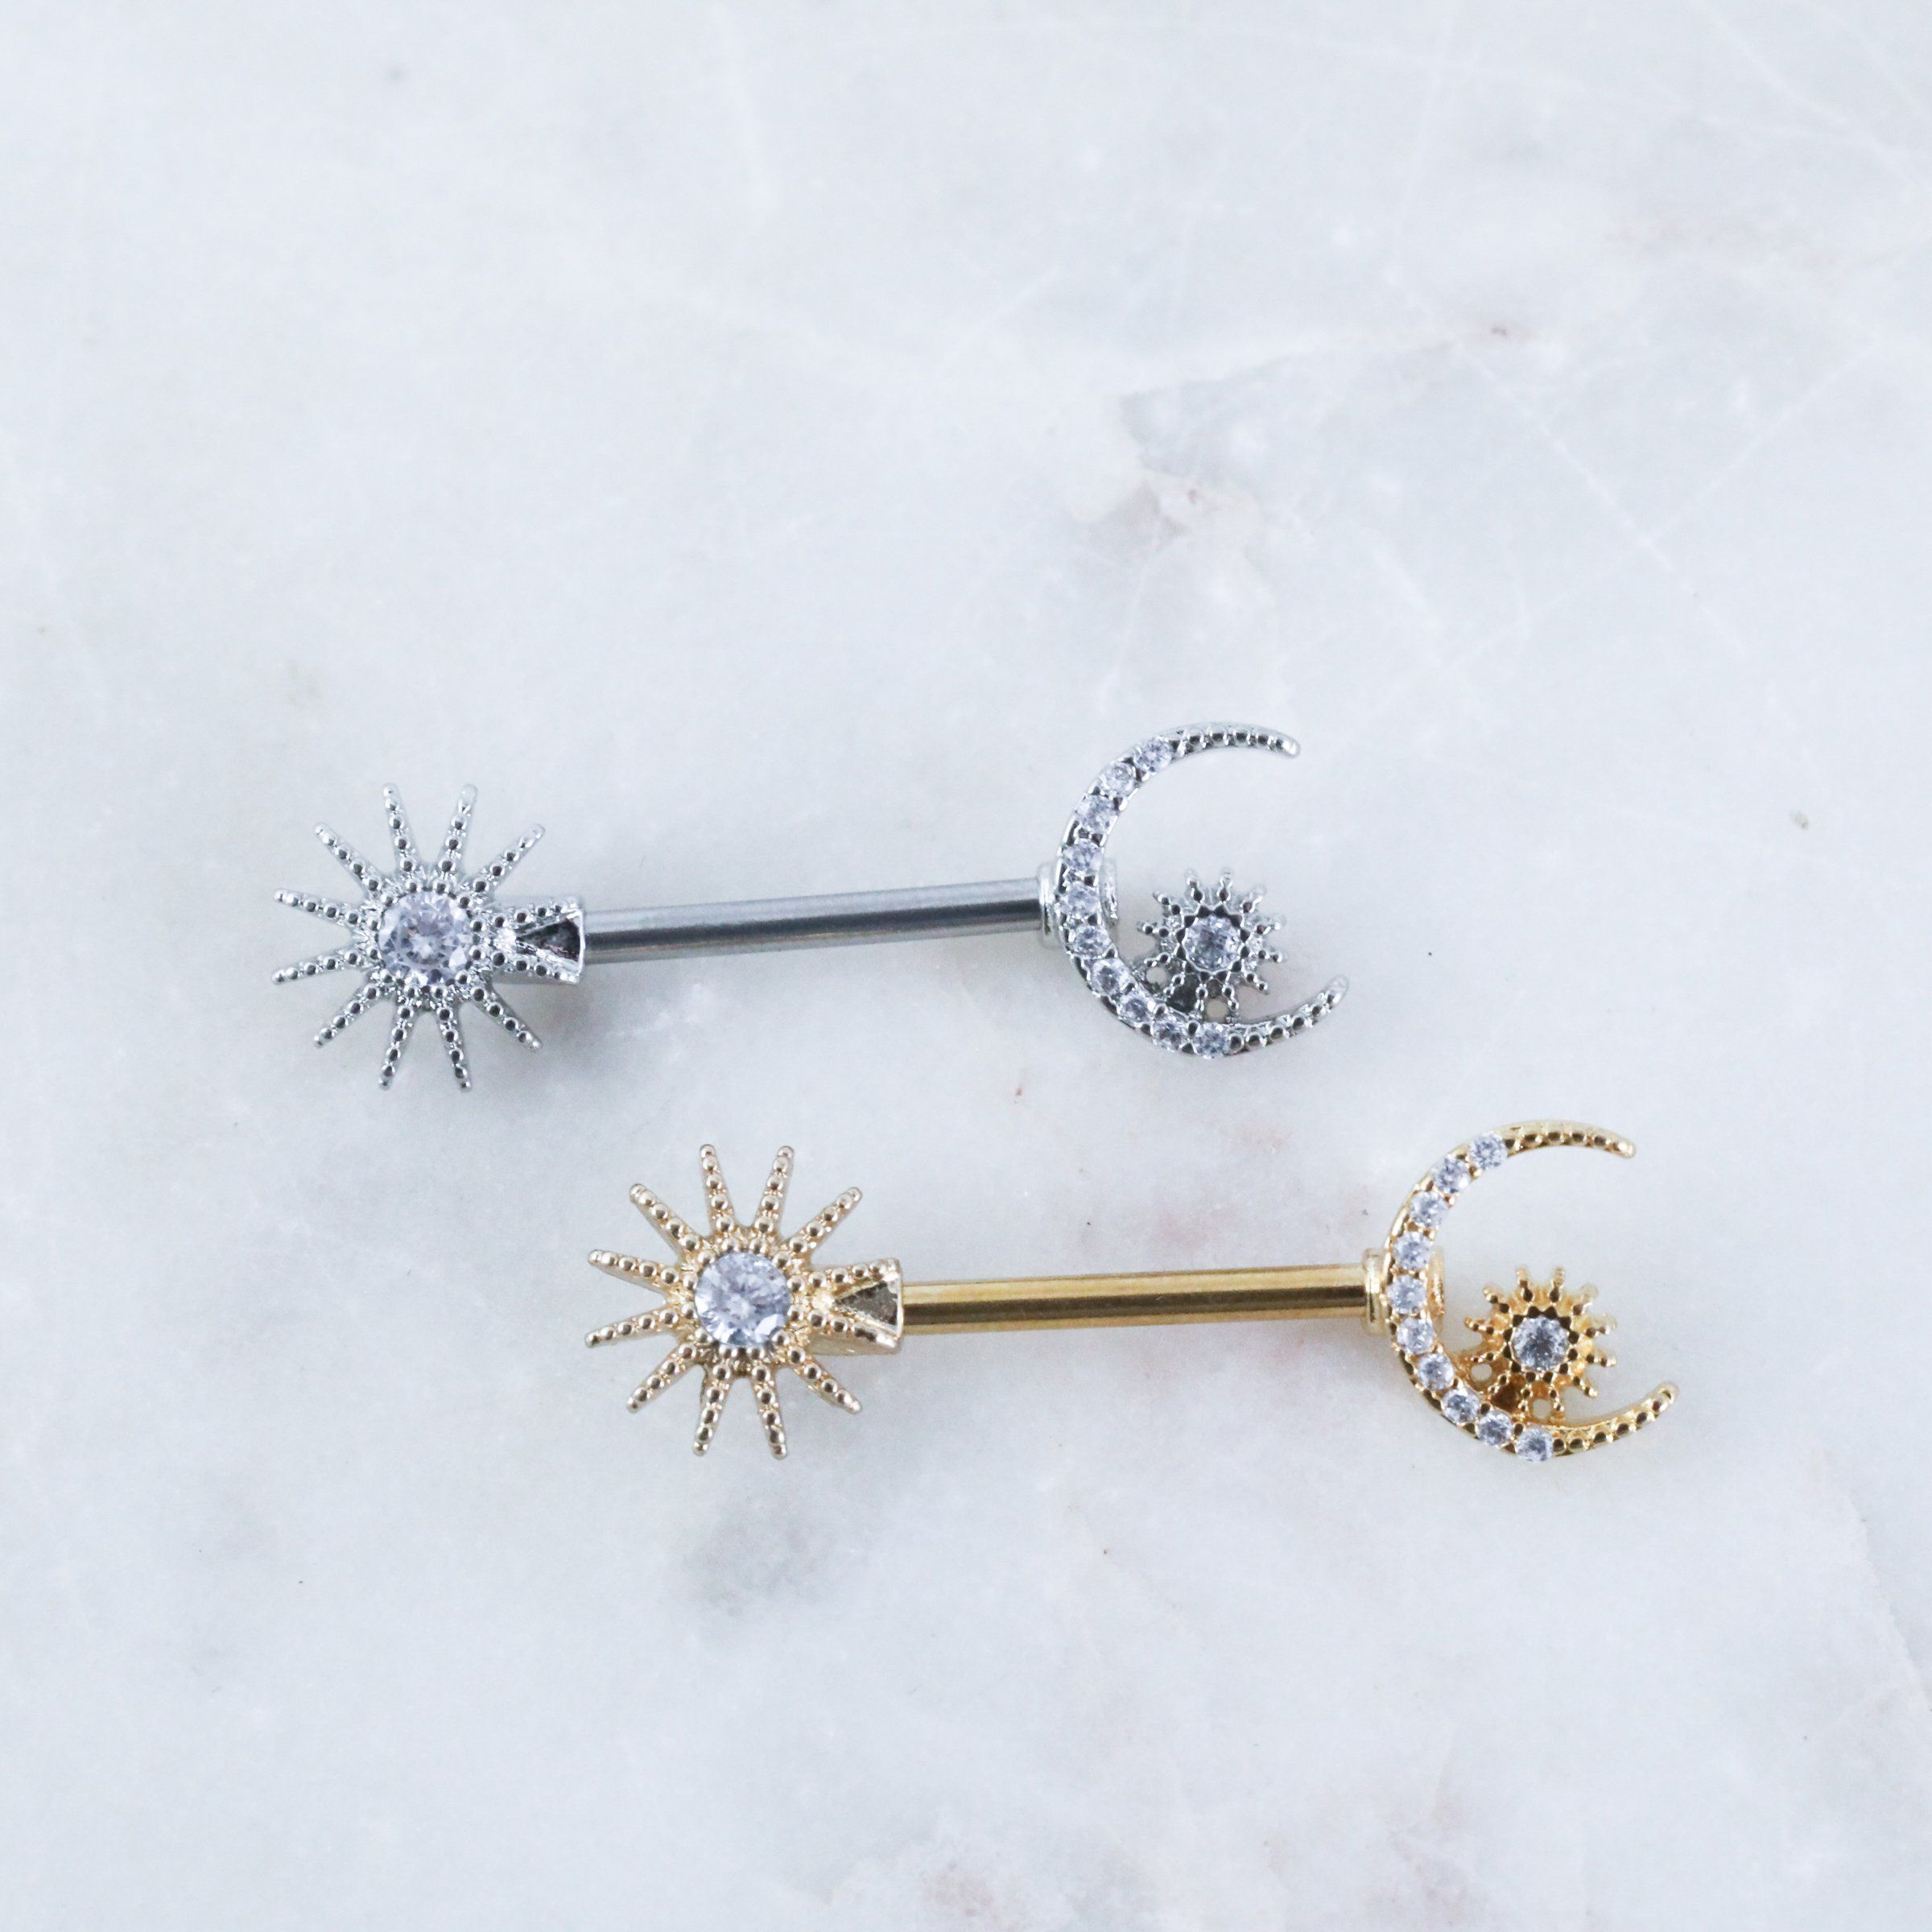 The Star & Moon Nipple Barbell is such a cute jewelry option for your nipple piercings! It is sold by SINGLE piece and is 316L surgical steel made with pvd plating (gold) at 14 gauge (1.6mm) and 9/16